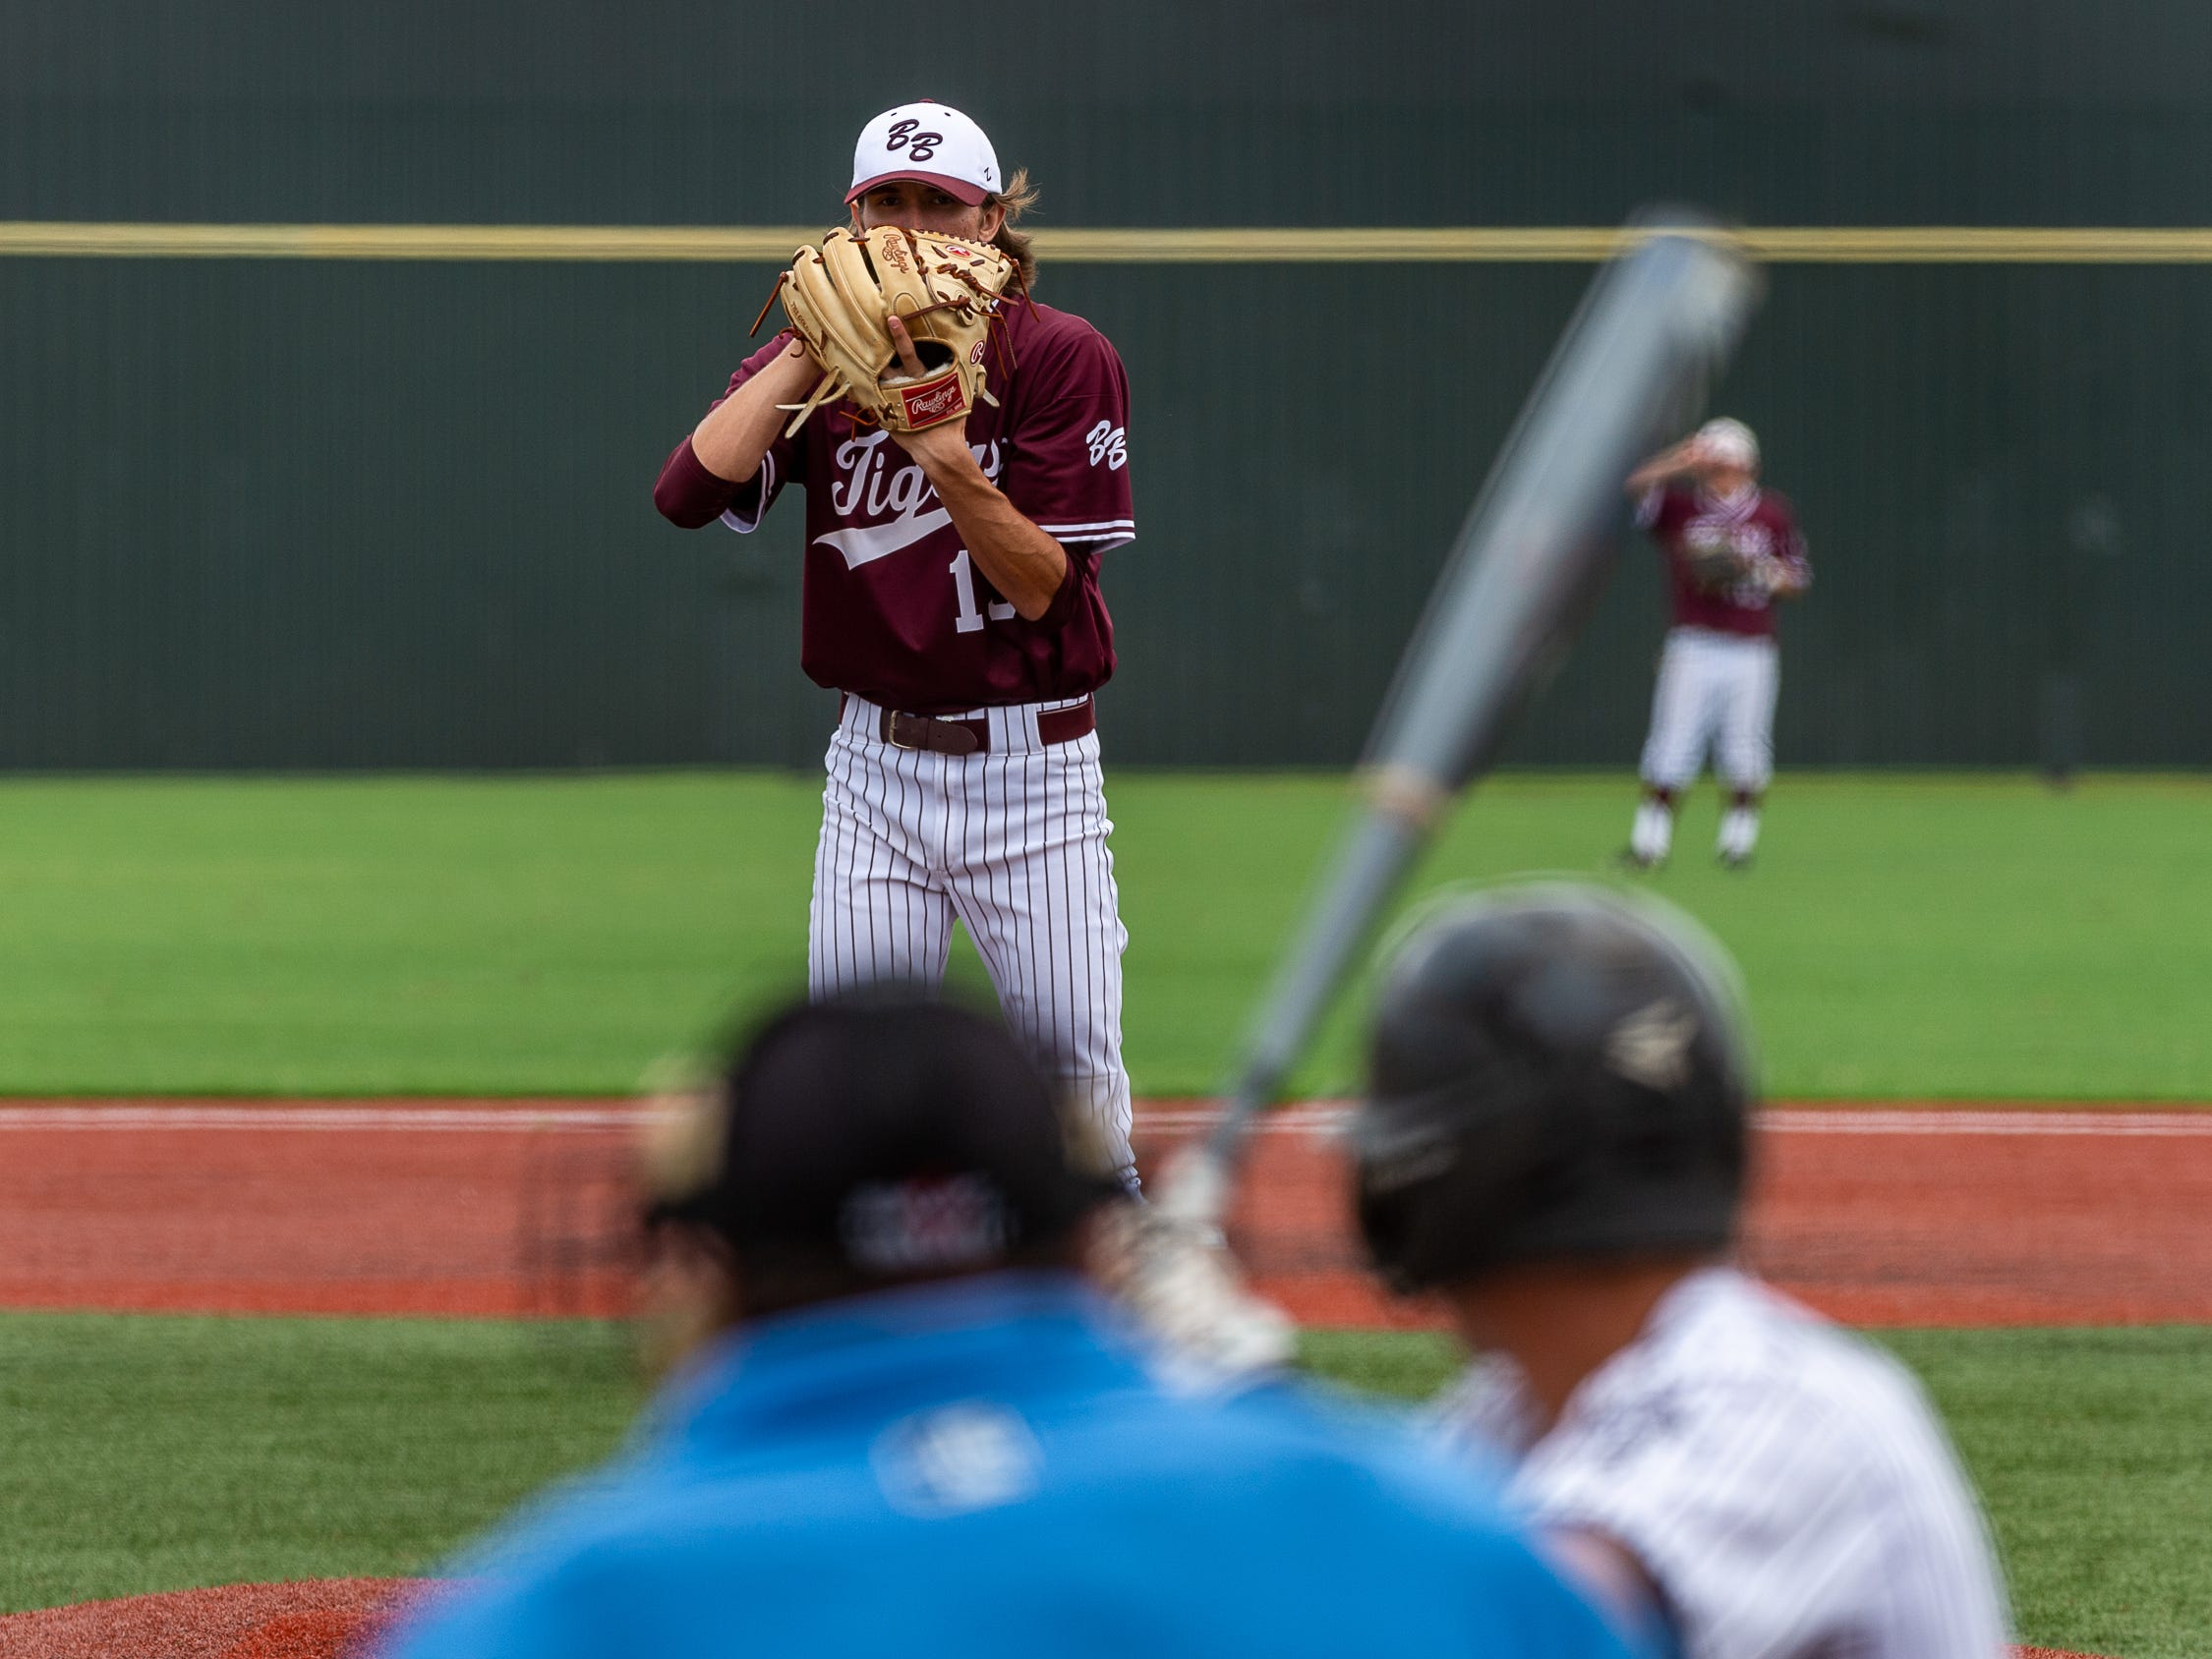 Caleb Seroski on the mound as  Breaux Bridge takes on Lakeshore  in the Class 4A semi final round at the LHSAA State Championship. . Sunday, May 12, 2019.